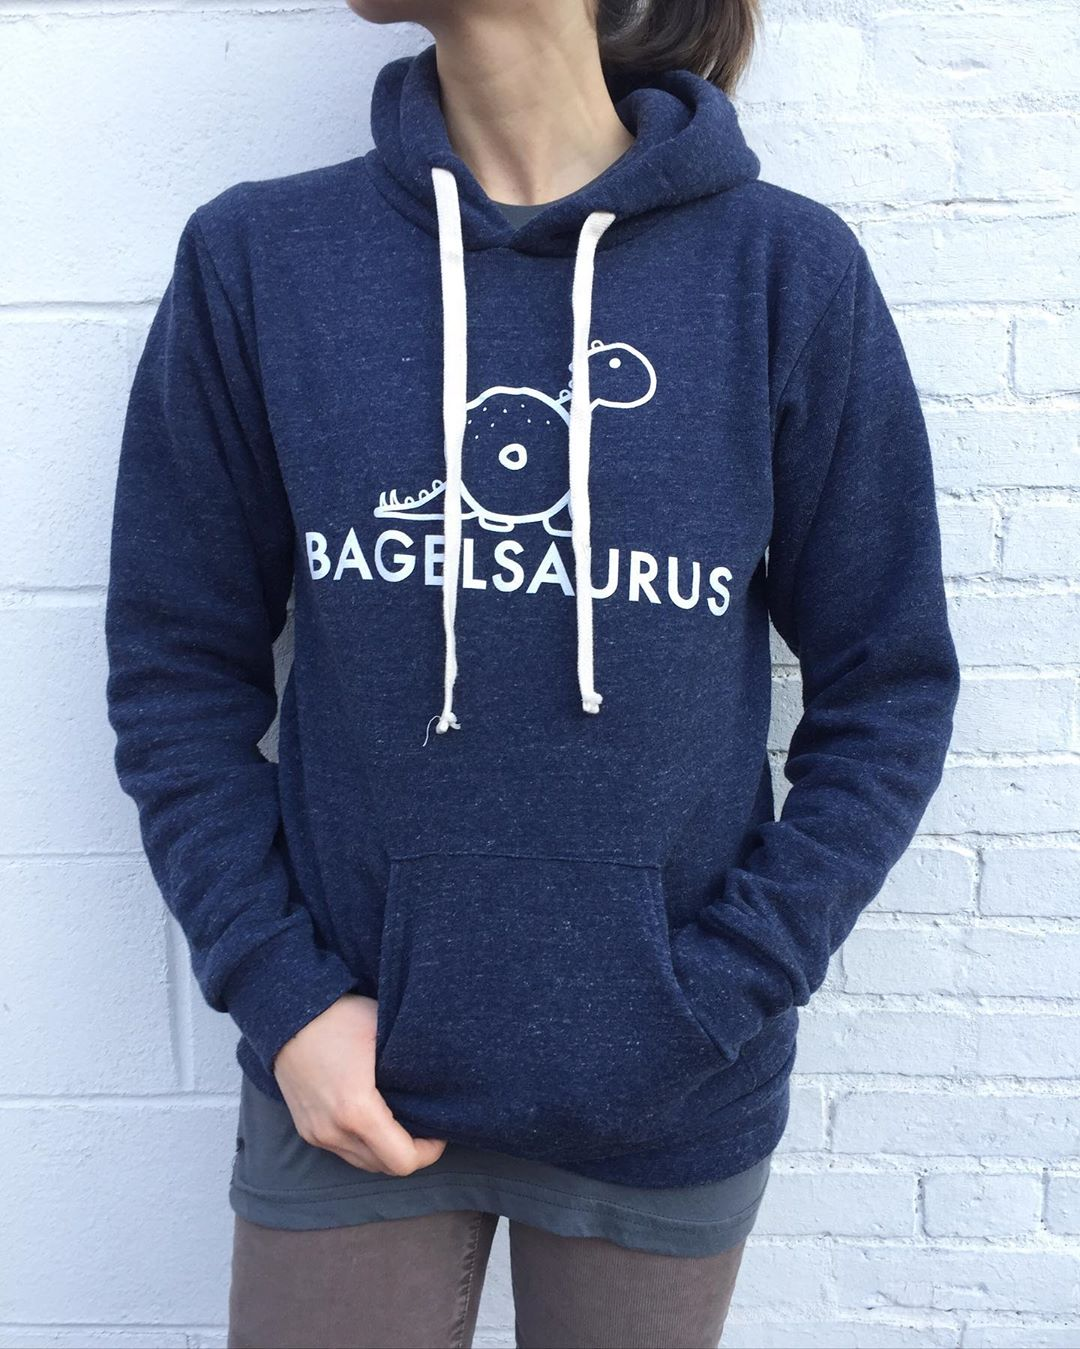 """A person (face is cut off at the top of the photo) models a navy blue hoodie with the word """"bagelsaurus"""" and an image of a dinosaur with a bagel for a body"""